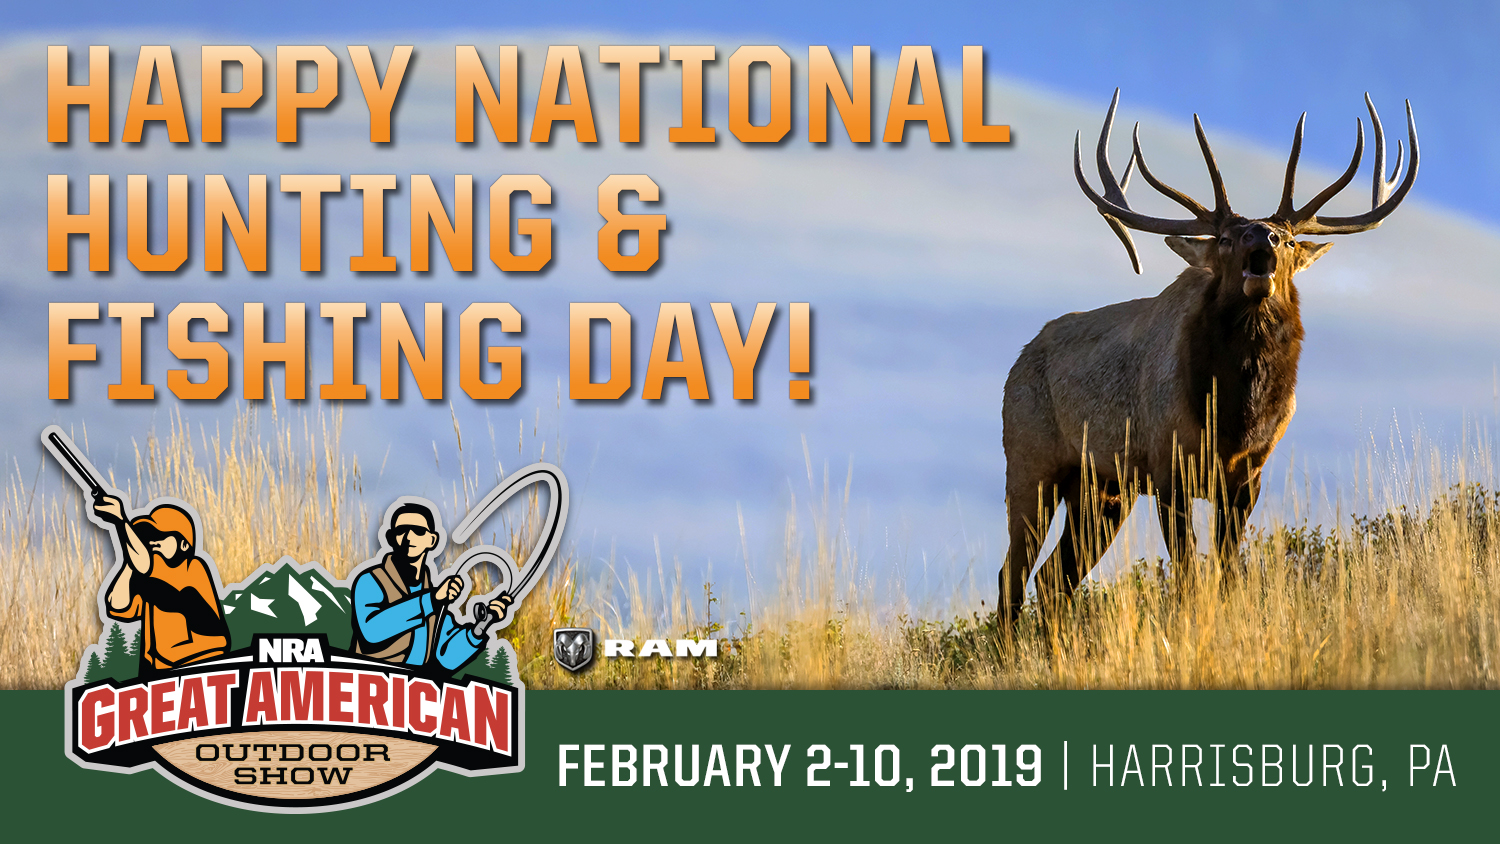 Celebrating National Hunting and Fishing Day with a Look Ahead to the 2019 Great American Outdoor Show